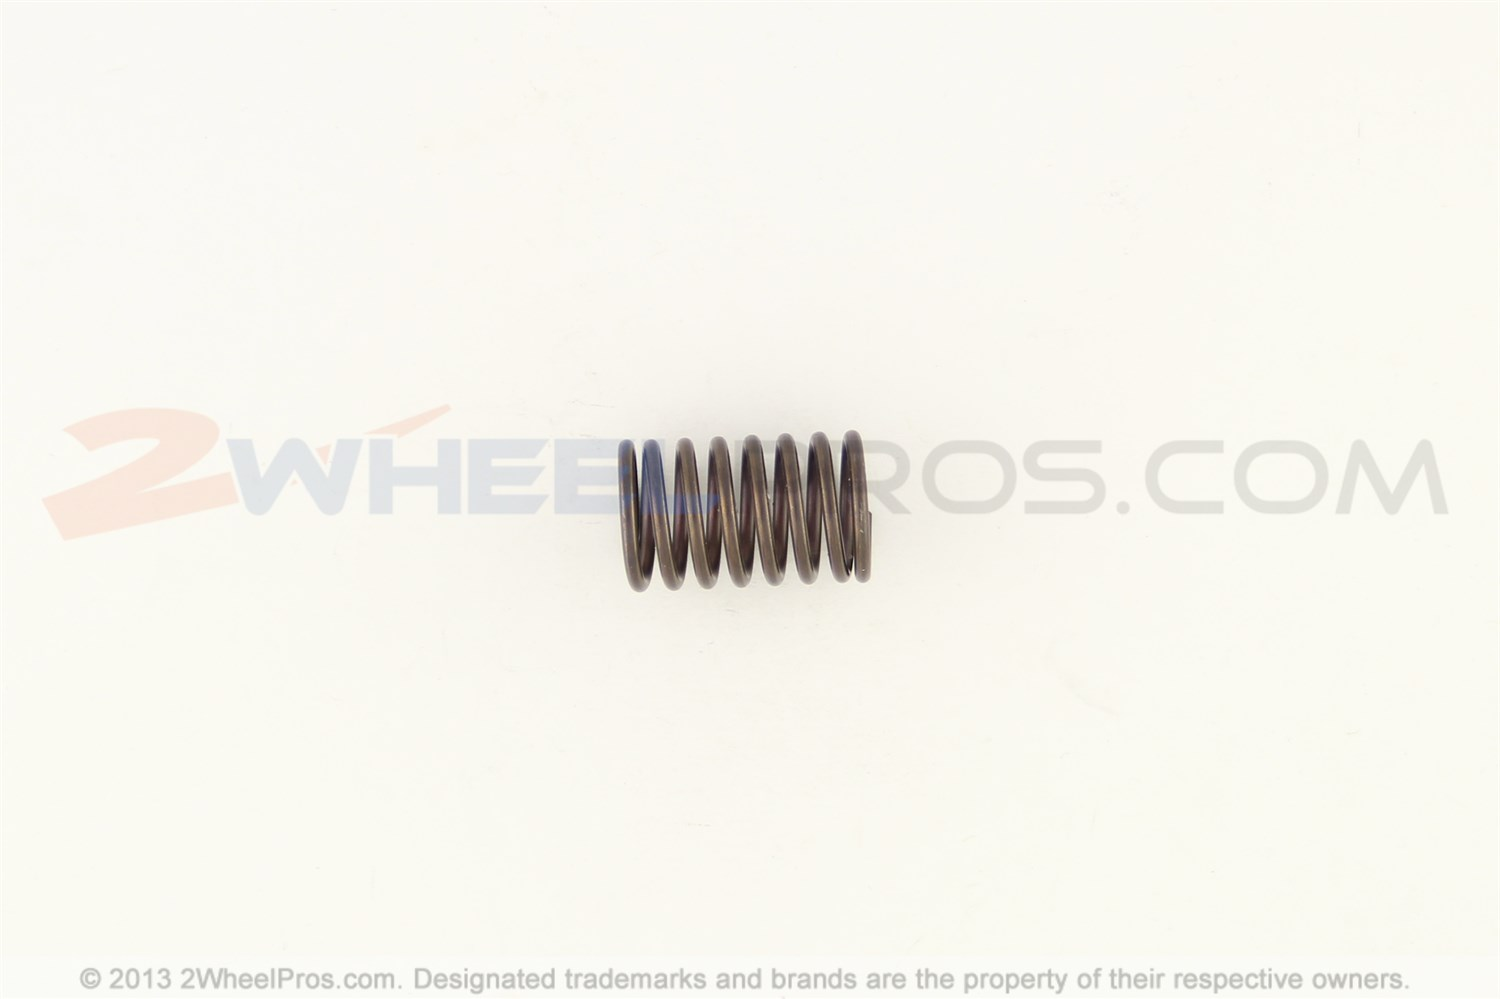 200a0 00 Yamaha Spring Compression 1 66